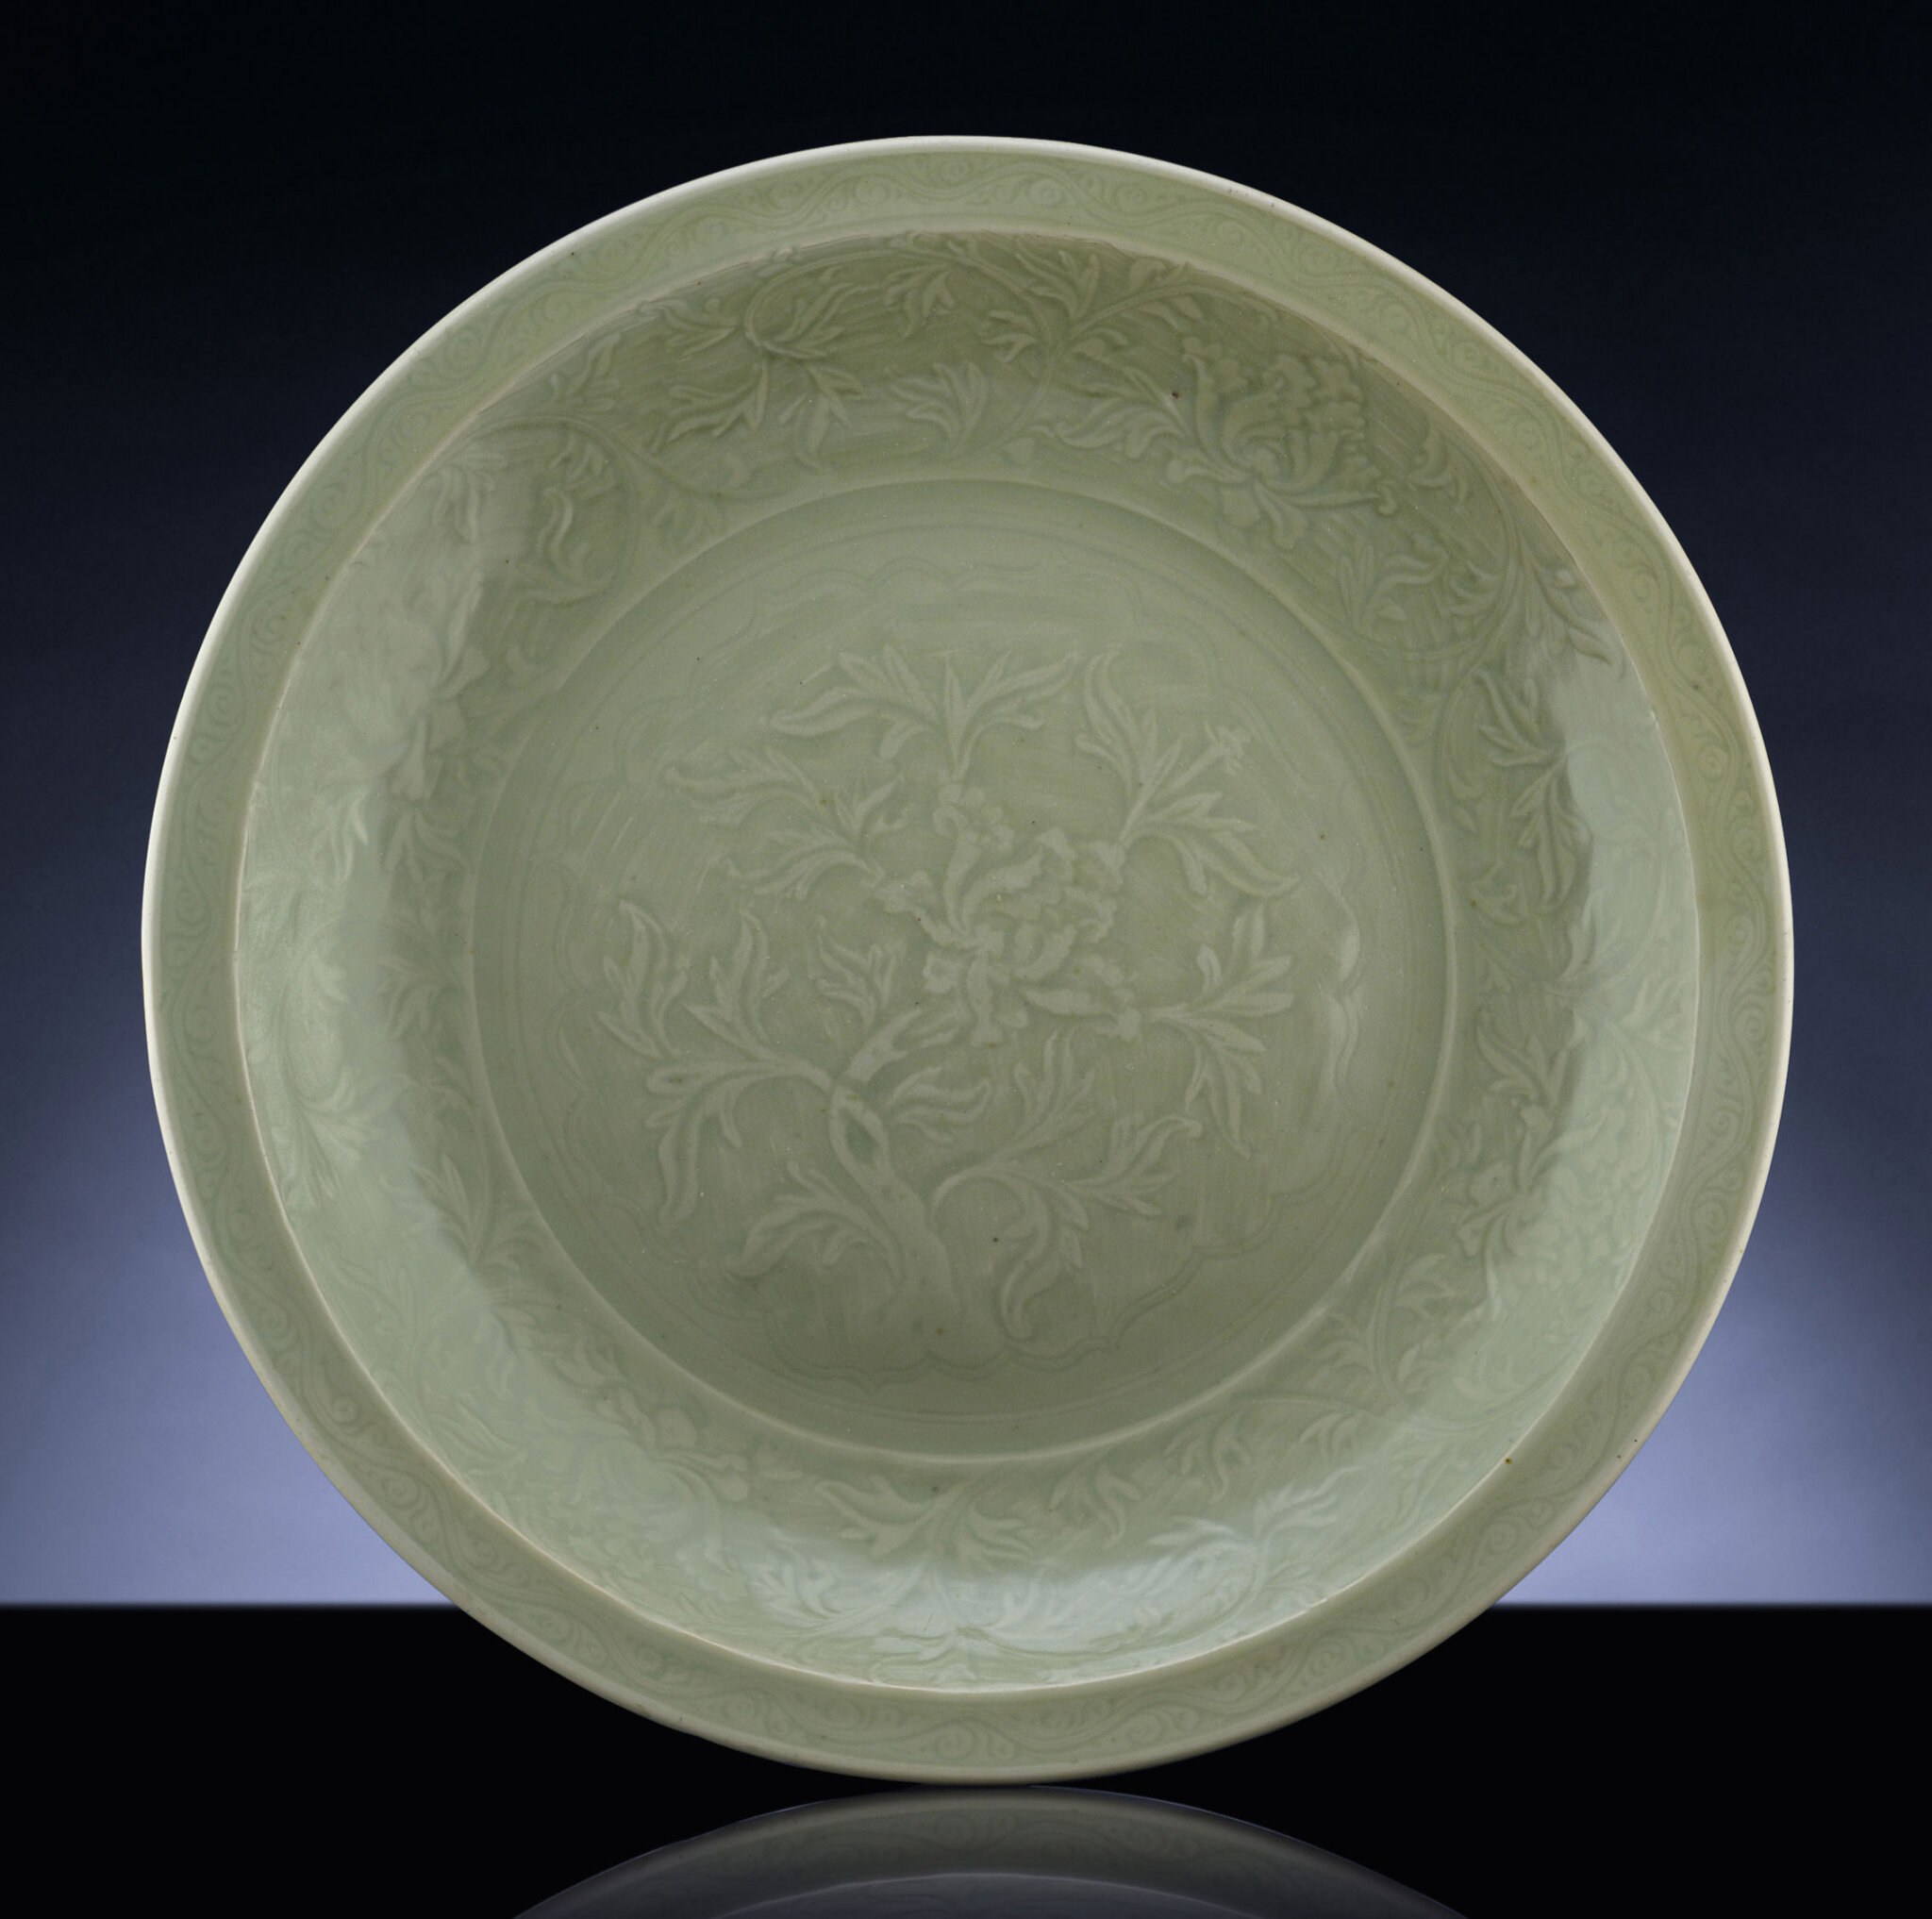 A rare early Ming massive carved Longquan celadon charger, Ming Dynasty, 14th-15th century